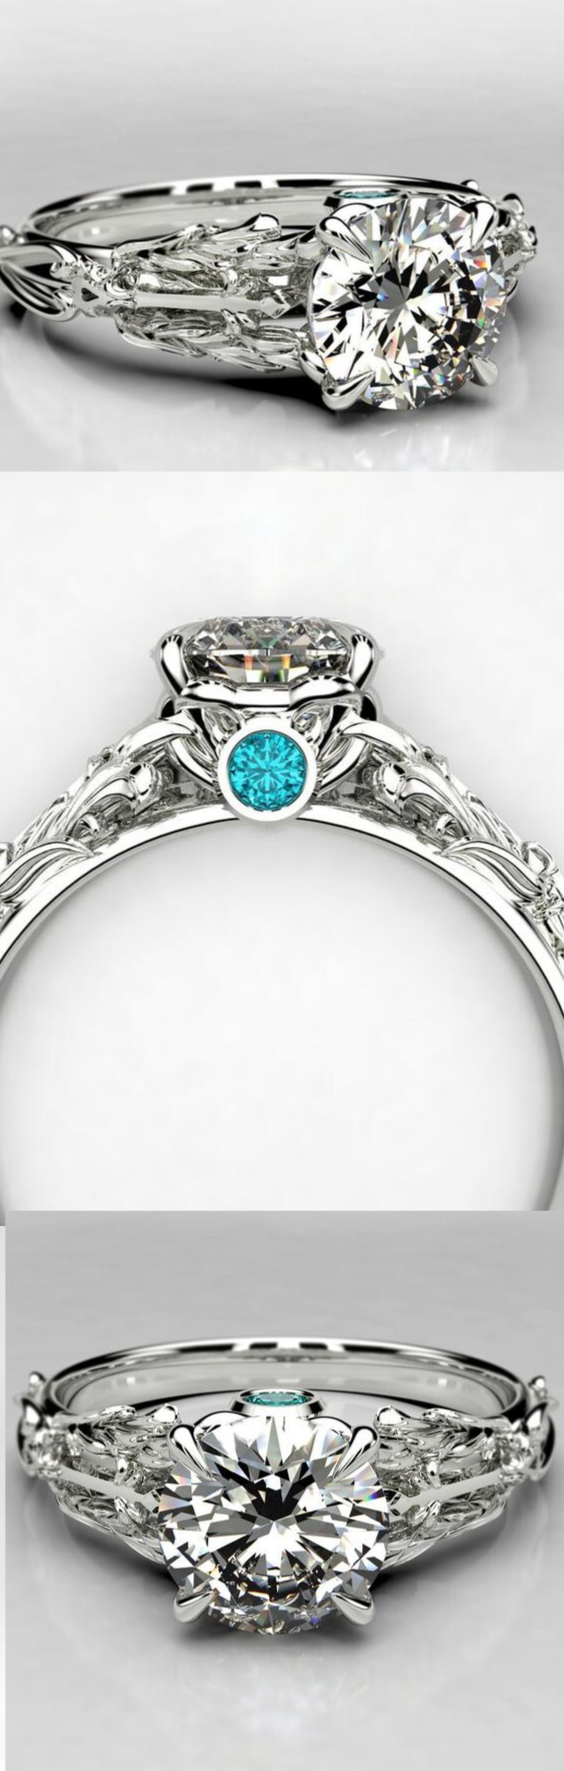 Kingdom Hearts Oathkeeper Keyblade Engagement Ring - Sora Ring .png